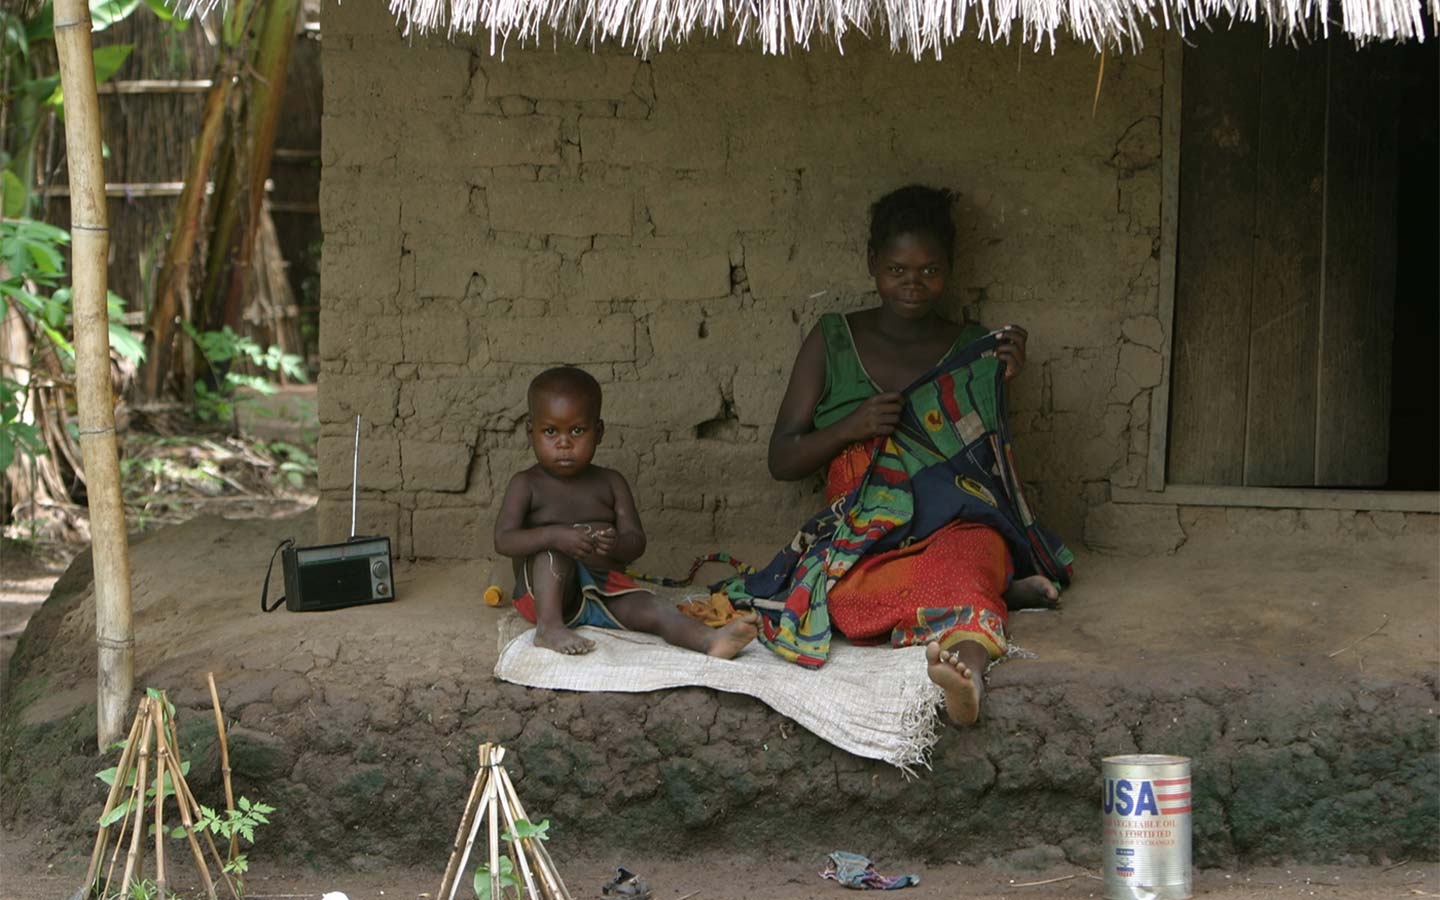 Mother and child listening to radio in front of simple home.